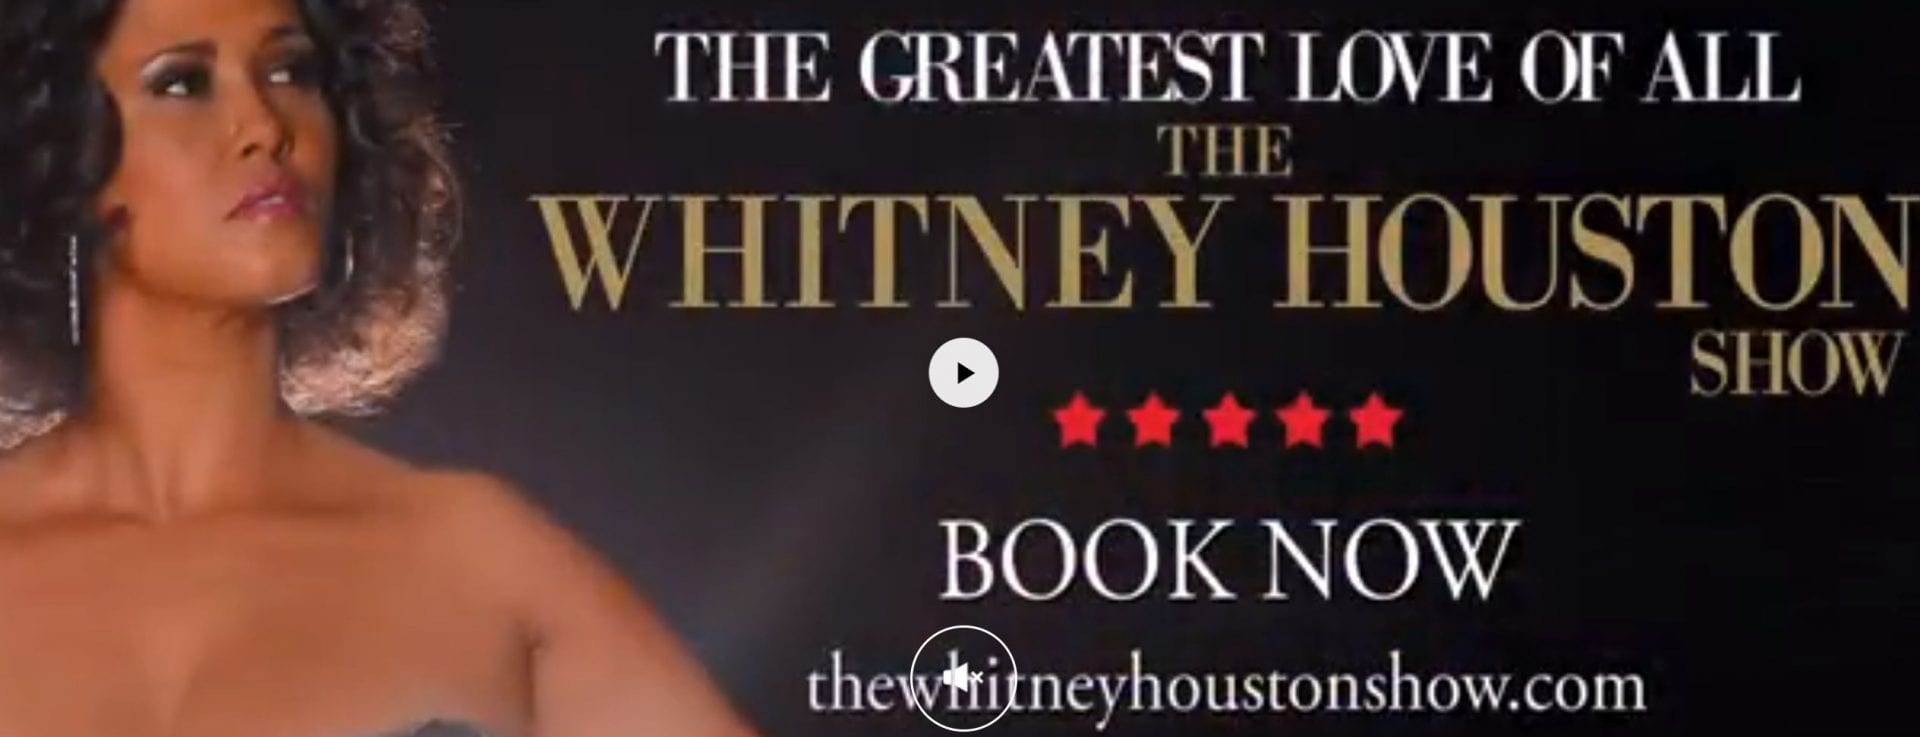 The Whitney Houston Show Whats On With Visit Fylde Coast